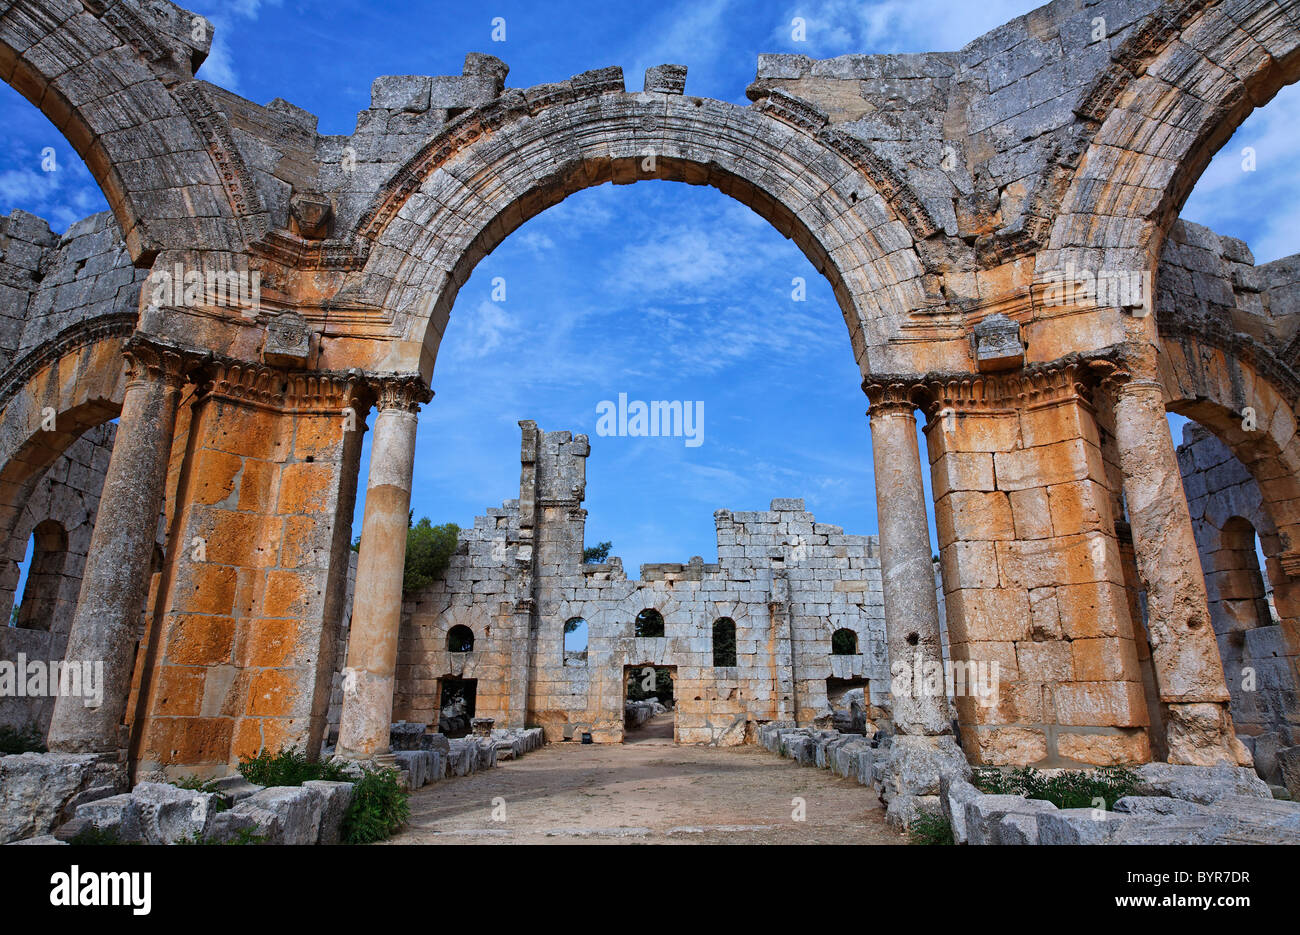 The ruins of the church of St Simeon, Syria - Stock Image